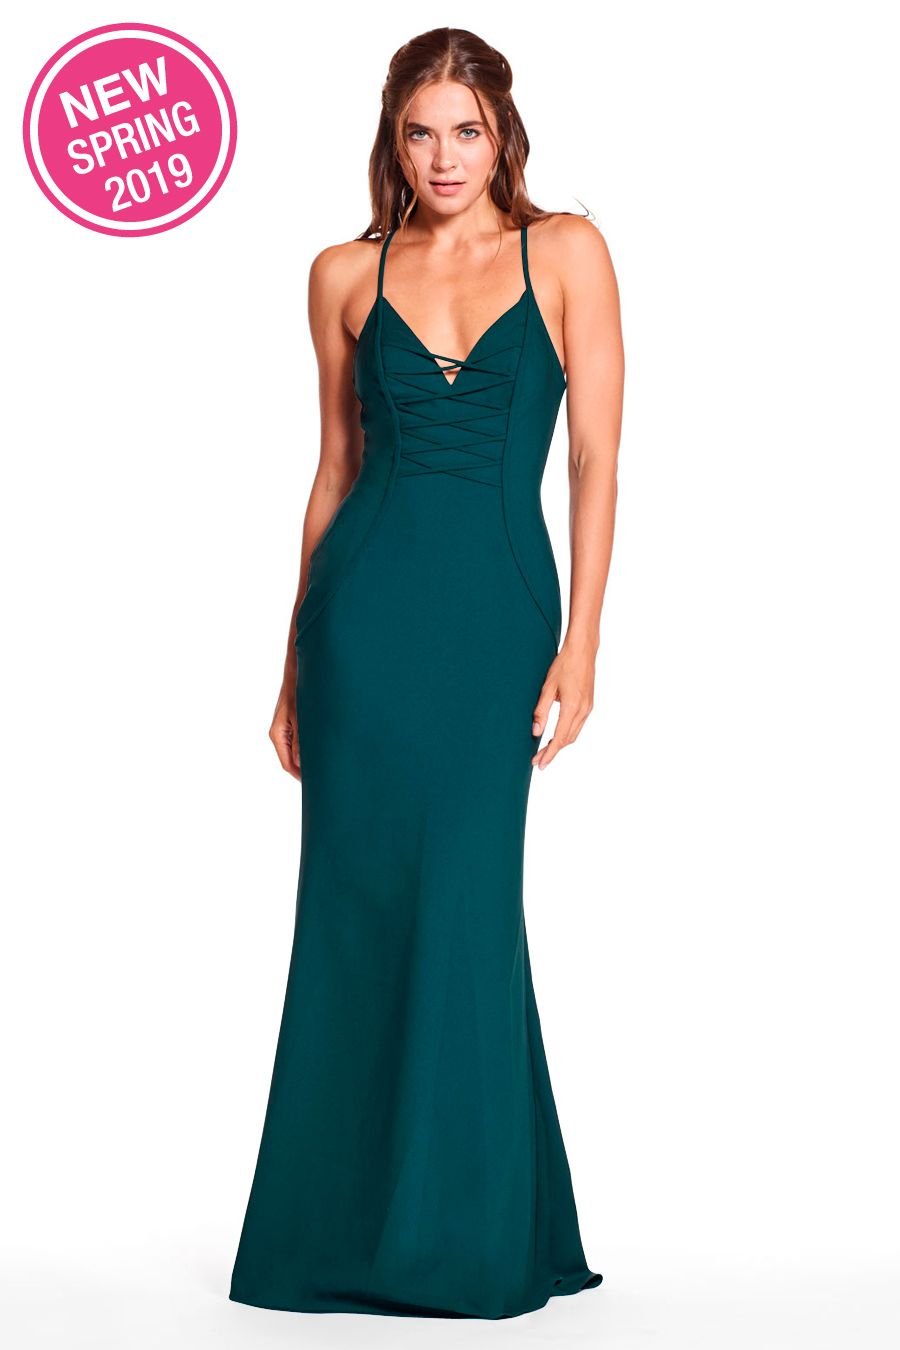 de8e14b3e44 STYLE  1902 Long aquamarine turquoise bridesmaid dress gown for elegant and  modern weddings. Perfect for any season